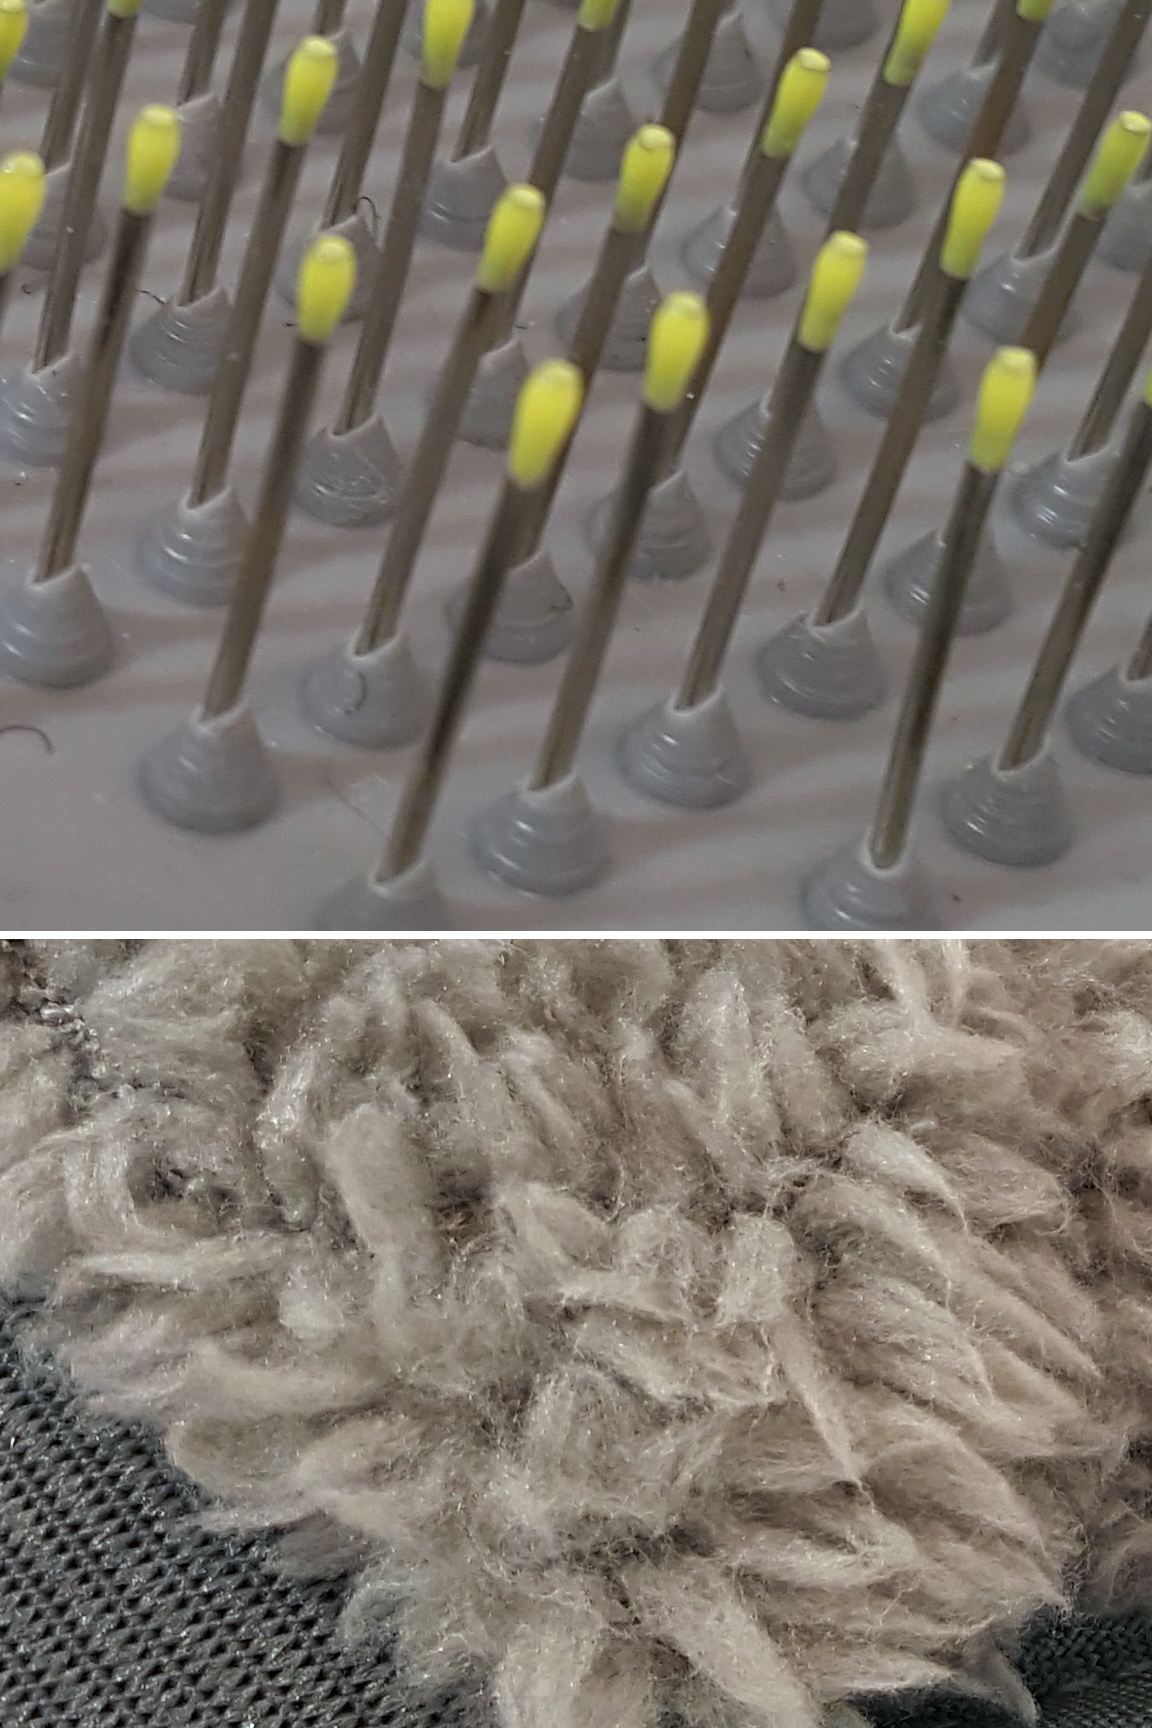 Close up view: Silicone coated brush tips. Thick, soft material.